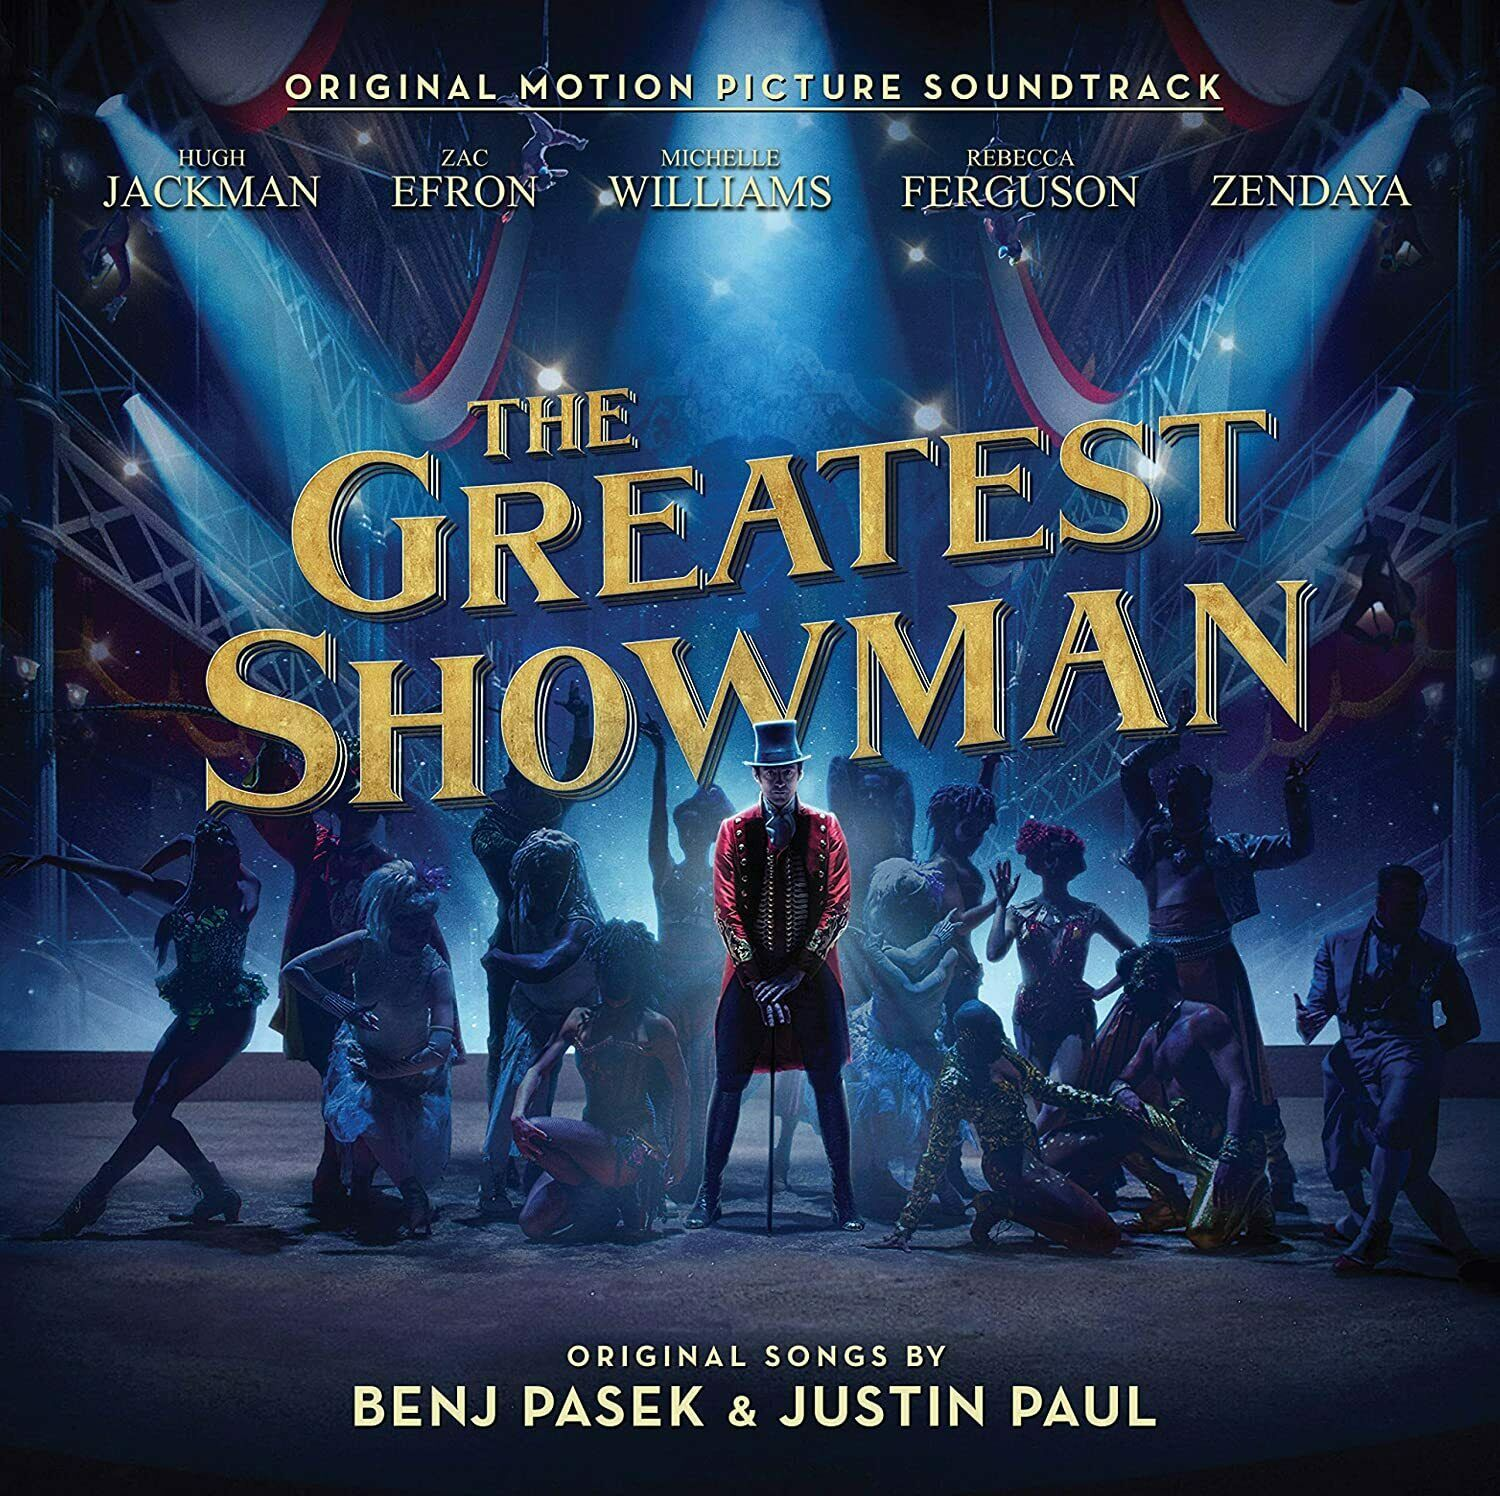 The Greatest Showman [Original Motion Picture Soundtrack] by Hugh Jackson